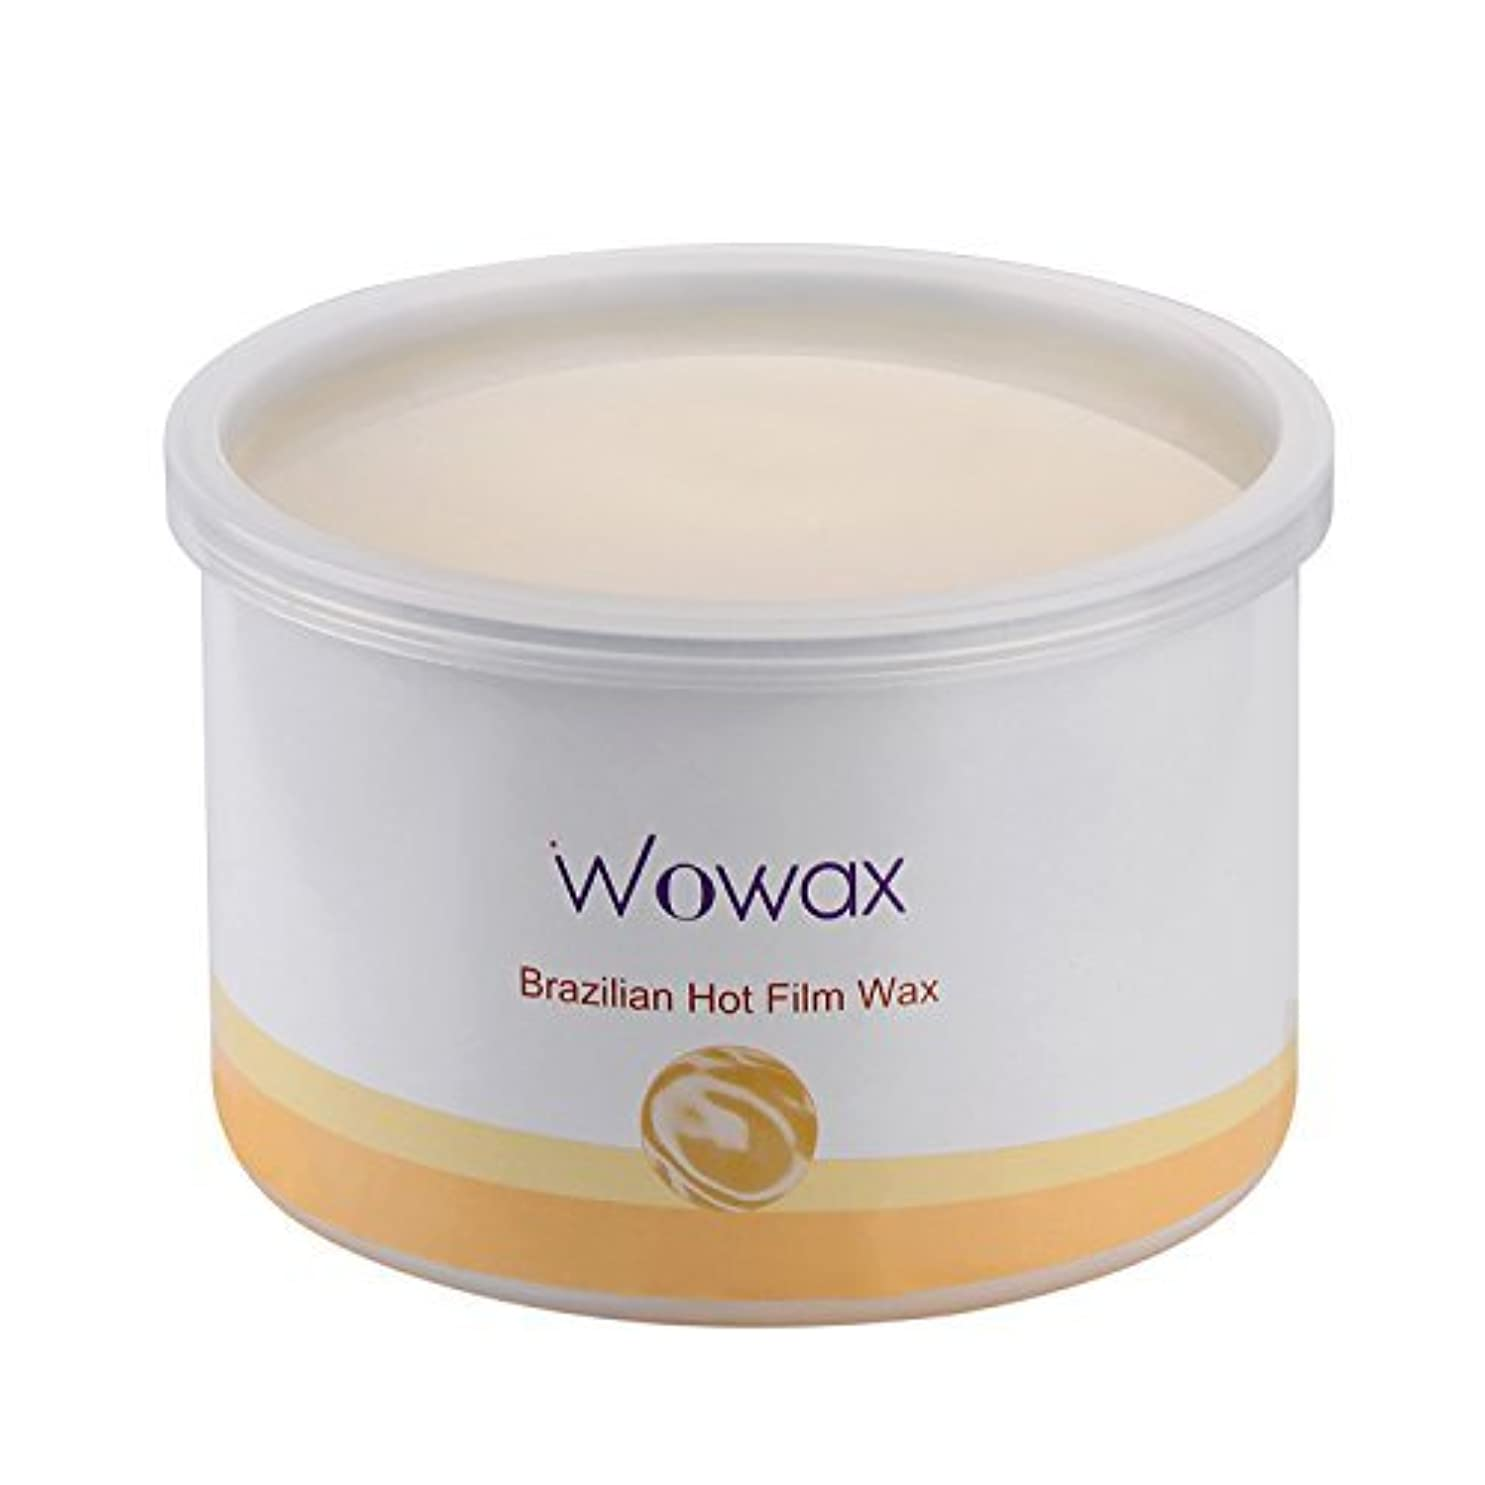 干ばつ取り替える回路WOWAX Brazilian Wax Stripless Hard Wax Hair Removal Wax for Whole Body and Sensitive Skin 14 oz [並行輸入品]